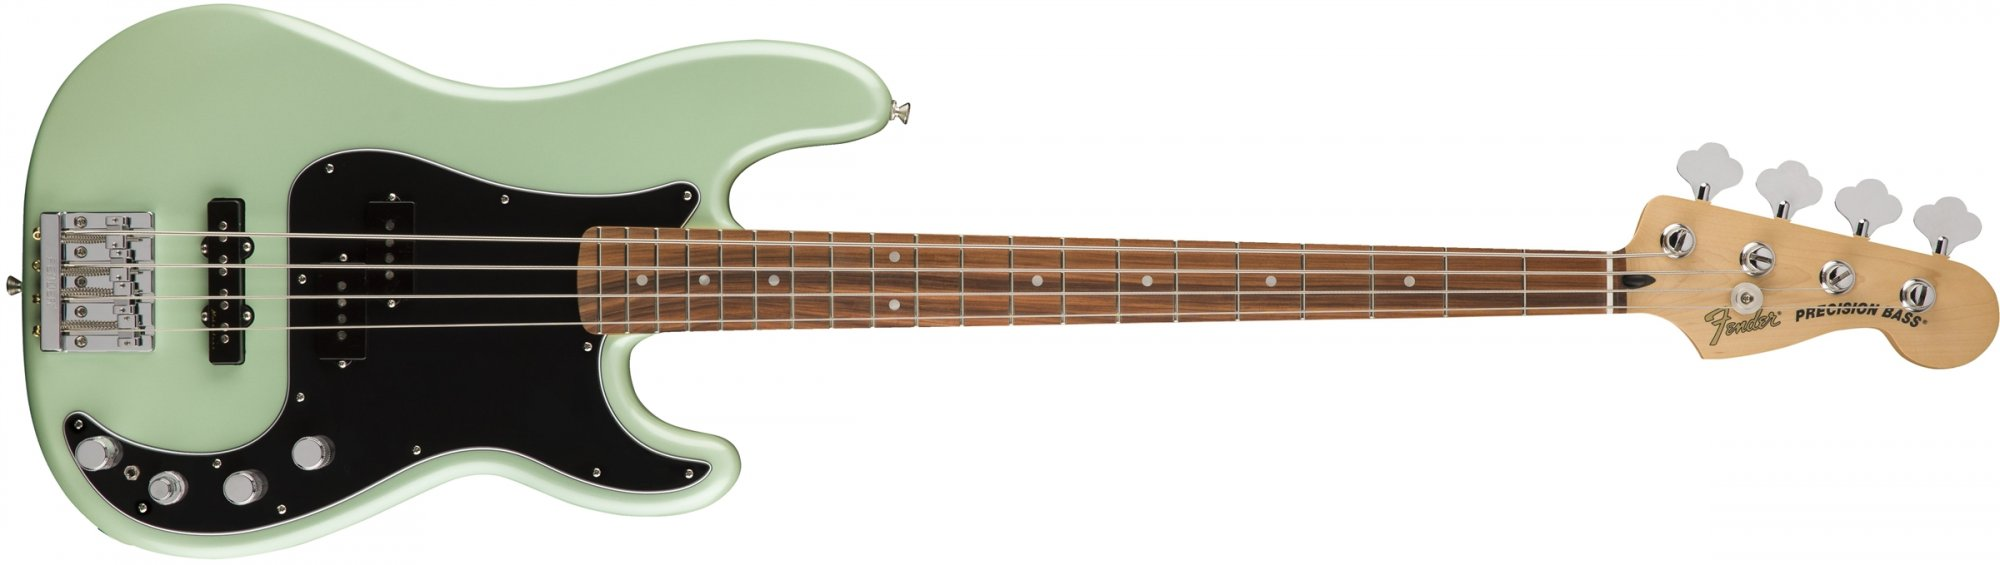 P Bass Deluxe Active Spec RW Surf Pearl